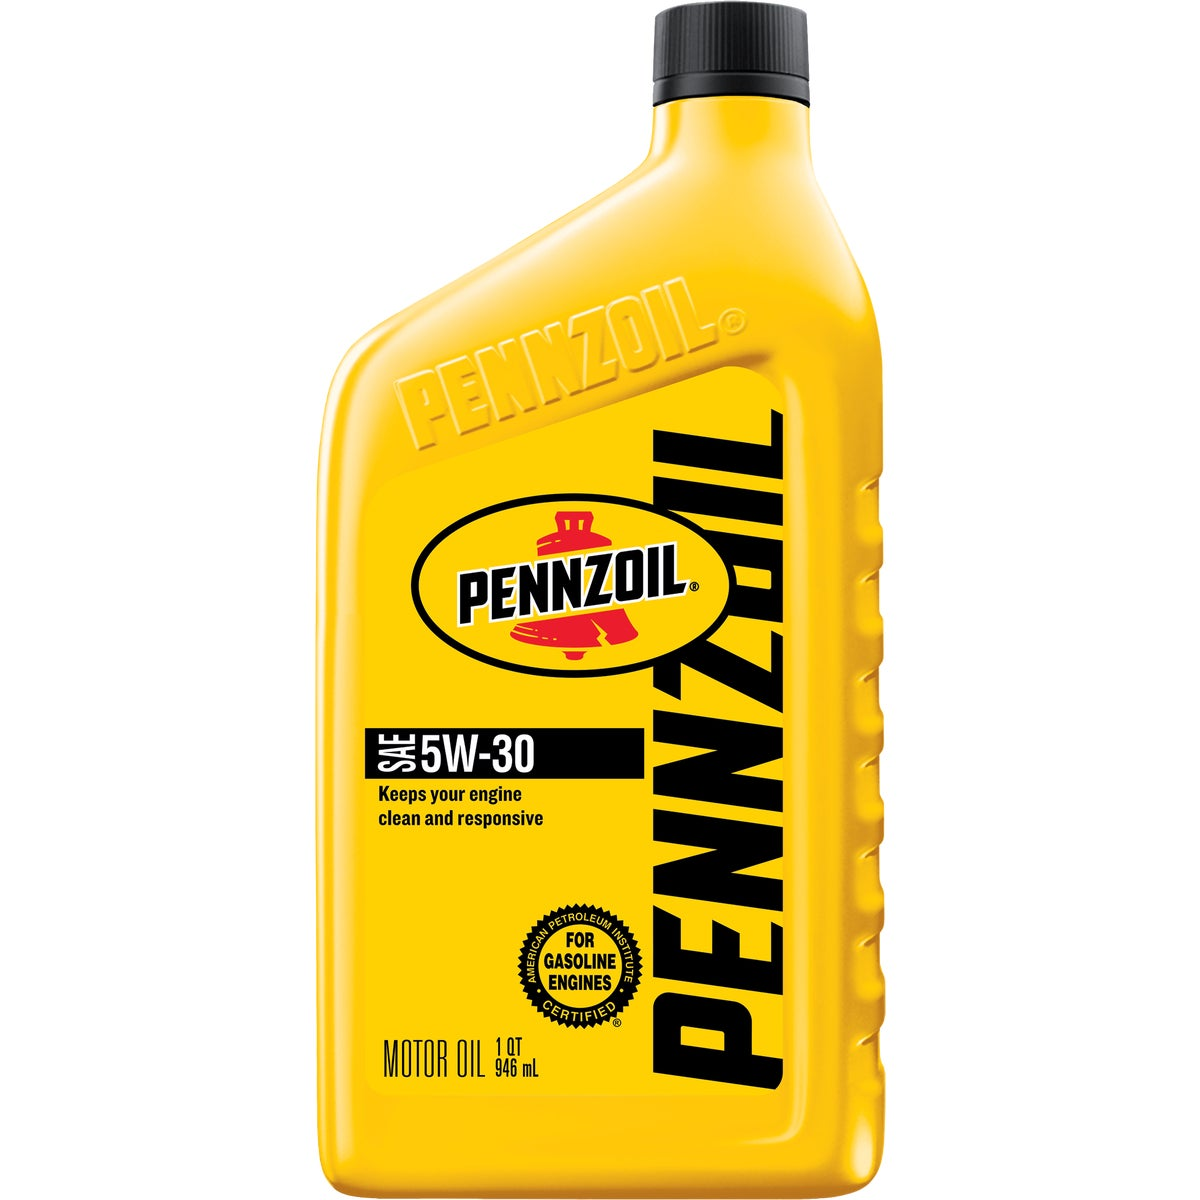 5W30 PENNZOIL MOTOR OIL - 550022800 by Sopus Products/ Lub